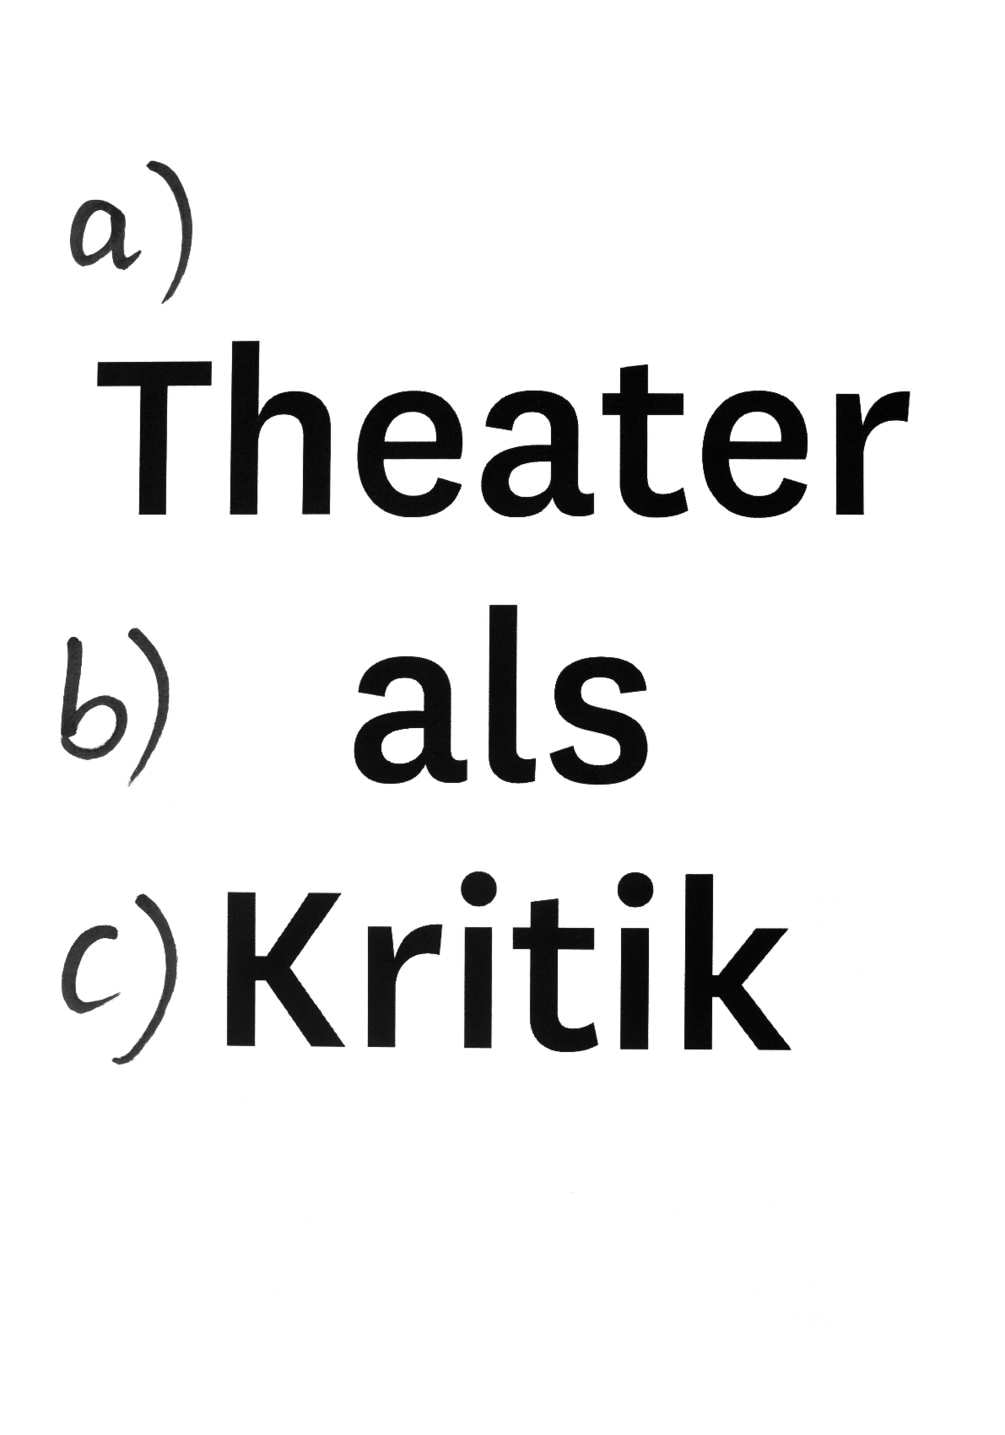 theater-as-critique-slip-15-1005x1435px